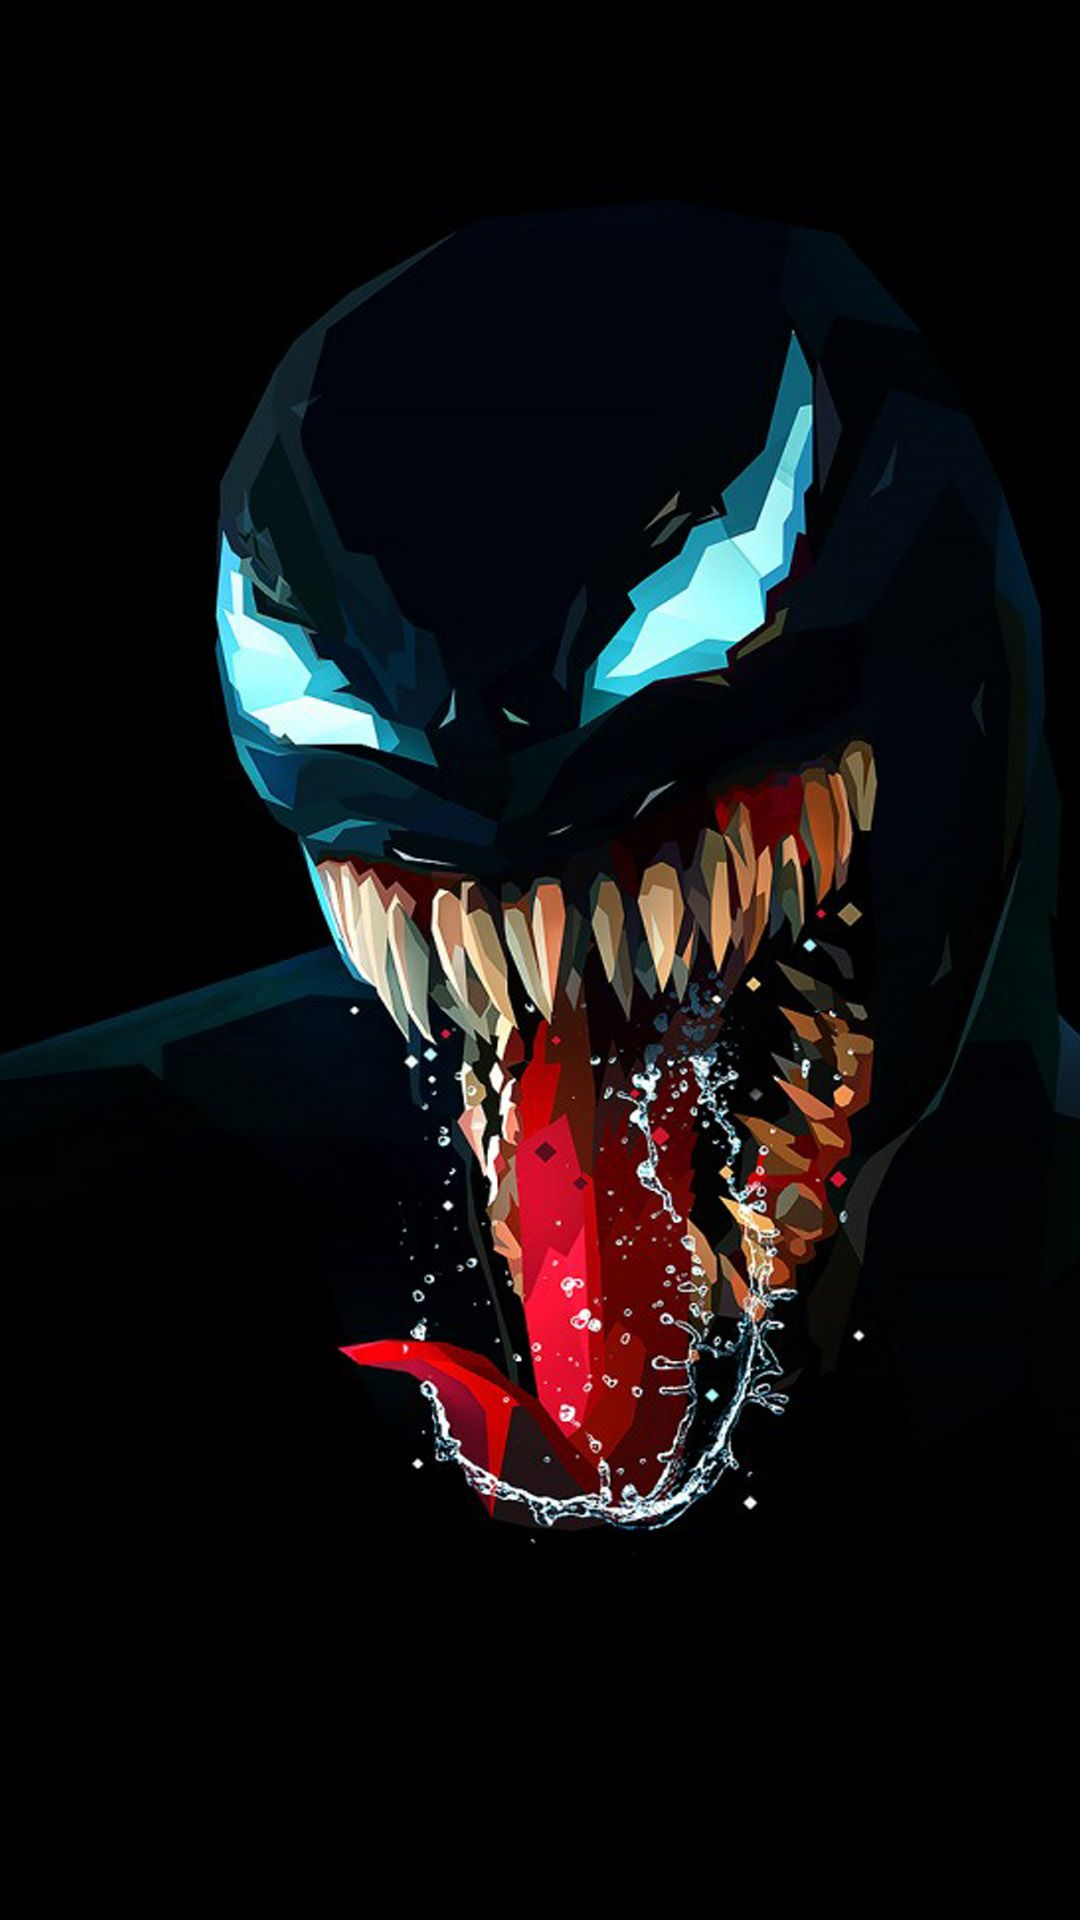 Venom Artwork Minimal Dark Background 4k Ultra Hd Mobile Wallpaper In 2020 Marvel Venom Marvel Wallpaper Avengers Wallpaper